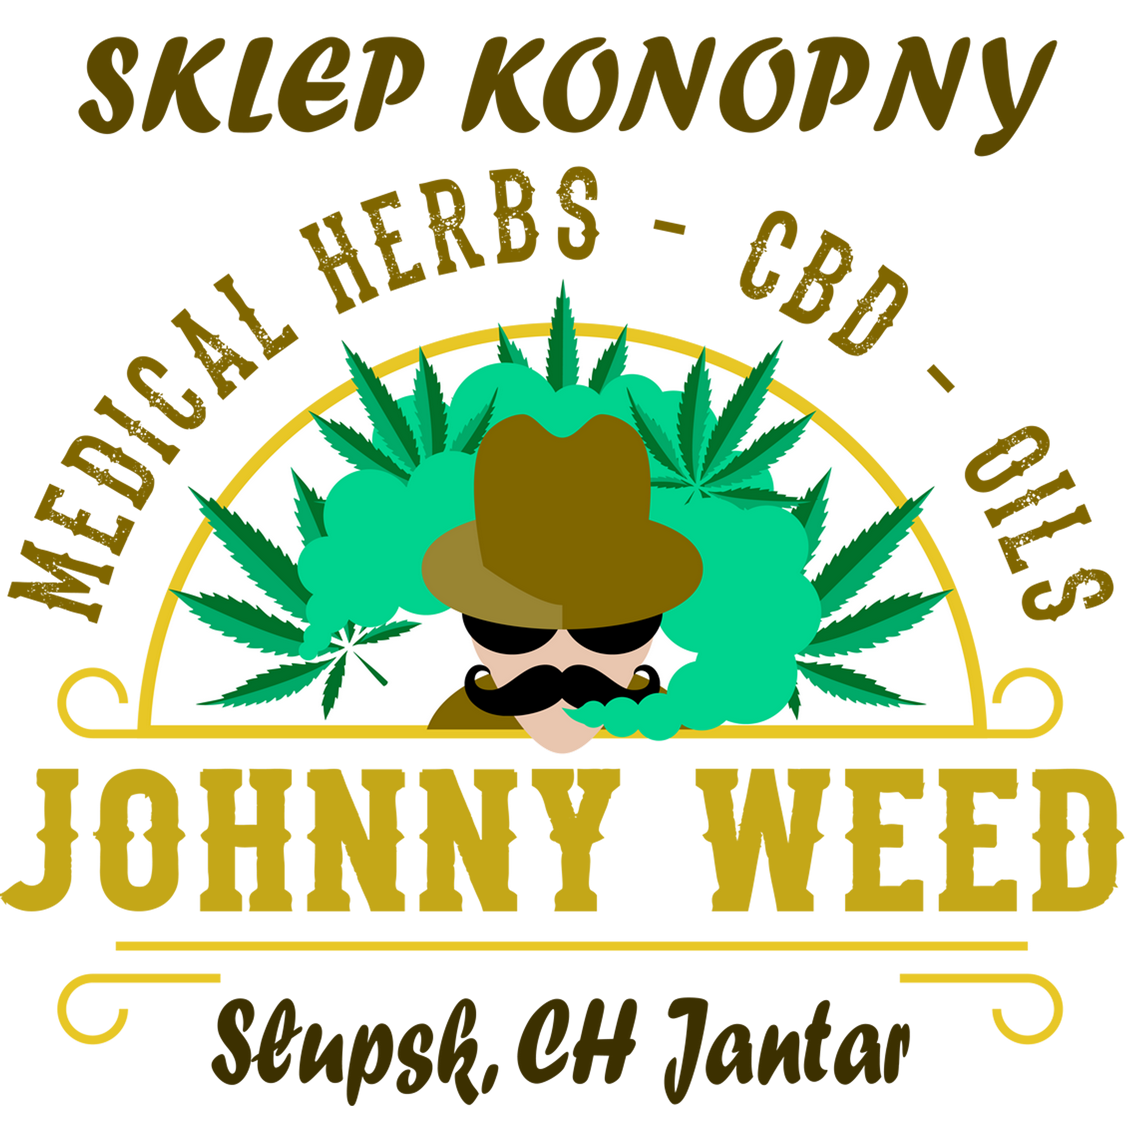 Johnny Weed